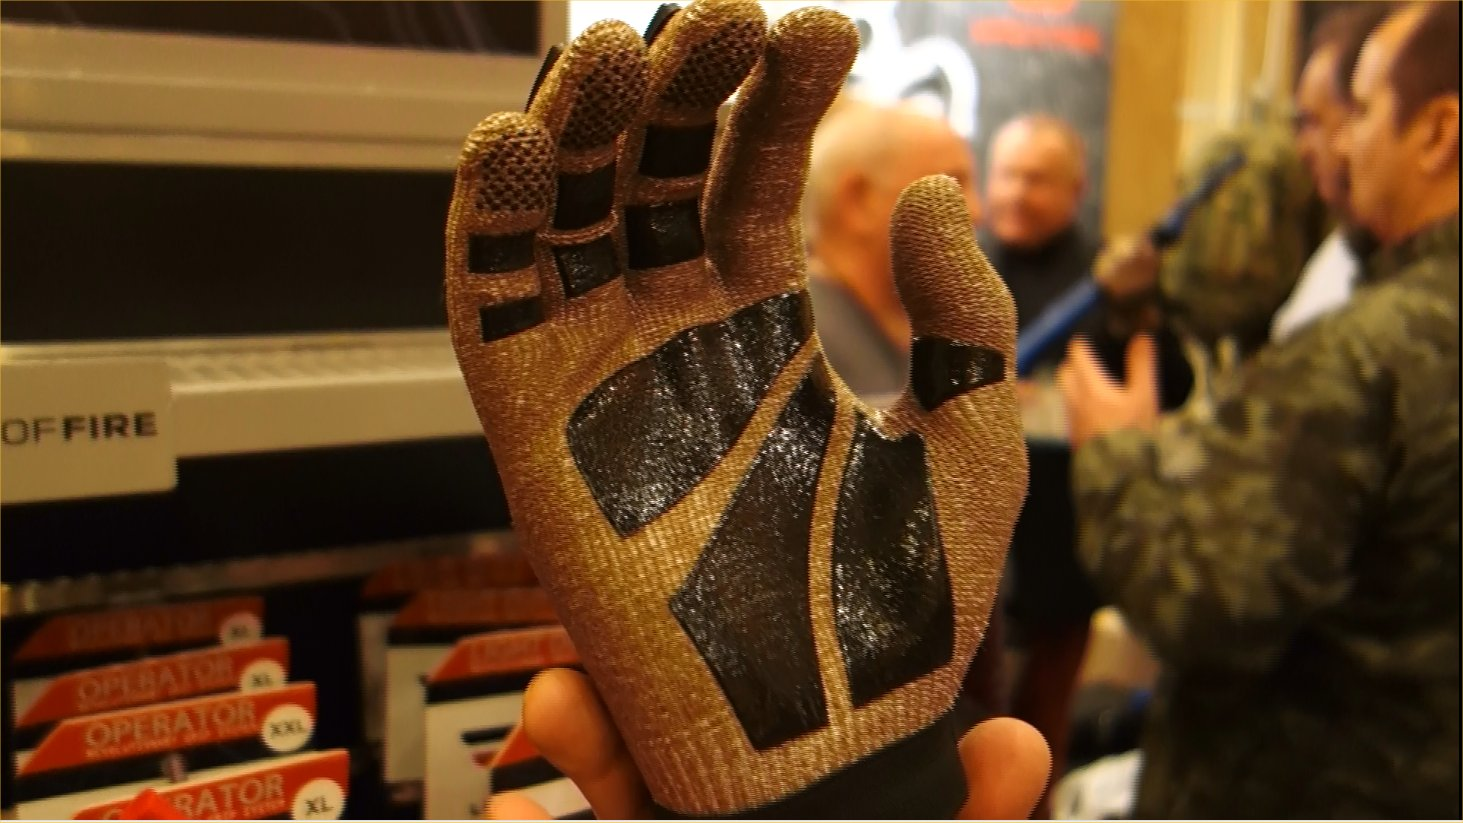 Line of Fire LOF Phantom Dyneema Cut Resistant Tactical Glove with Hard Knuckles and Silicone Print Gripping Material Tactical Gloves Combat Gloves Brian Miller SHOT Show 2013 David Crane DefenseReview.com DR 1 Line of Fire LOF Phantom Combat/Tactical Glove: Seamless Dyneema Cut Resistant Combat/Tactical Shooting Gloves with Hard Knuckles and Fingers and Silicone Gripping Material (Video!)